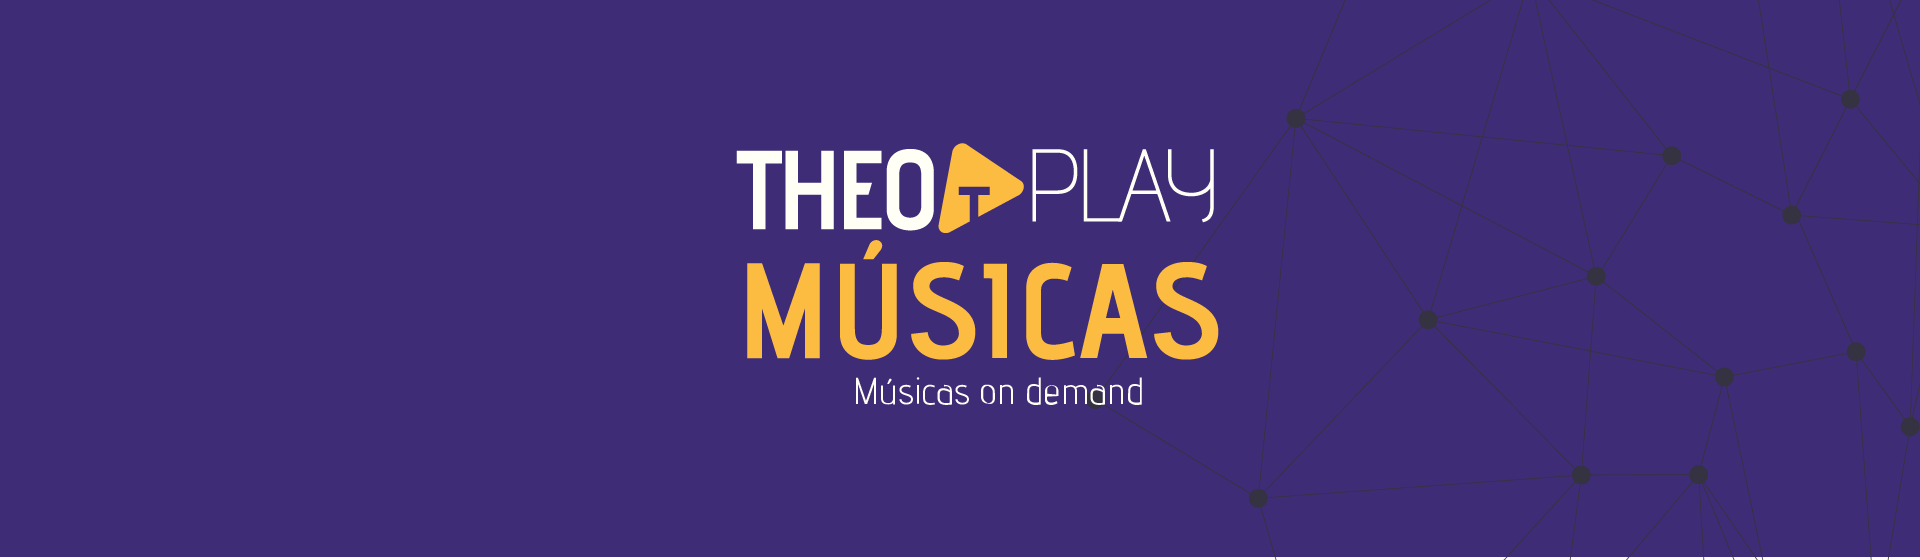 Theo musica banner 01